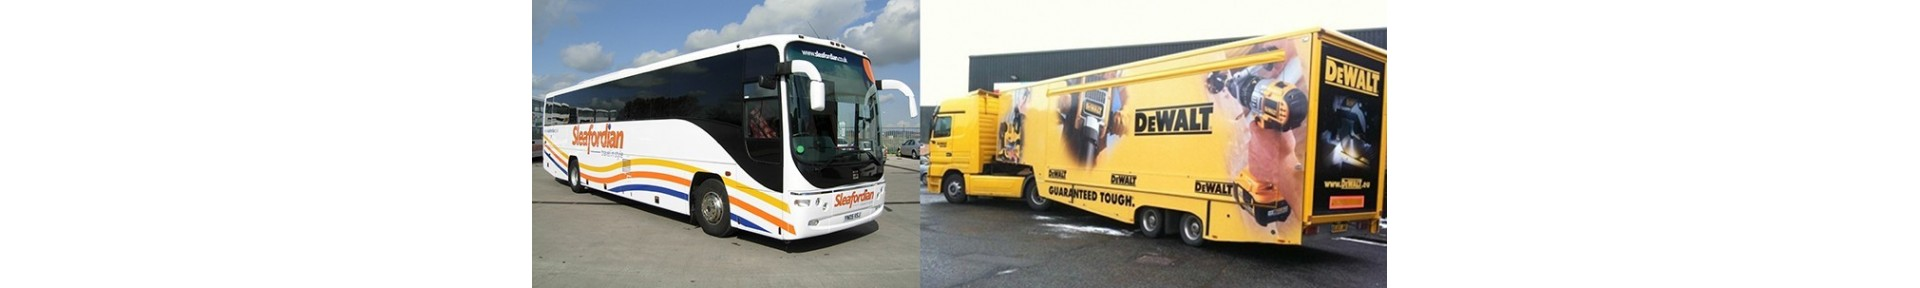 Larger vehicle Graphics | Bus Graphics |  Lorry, truck or box van Grap